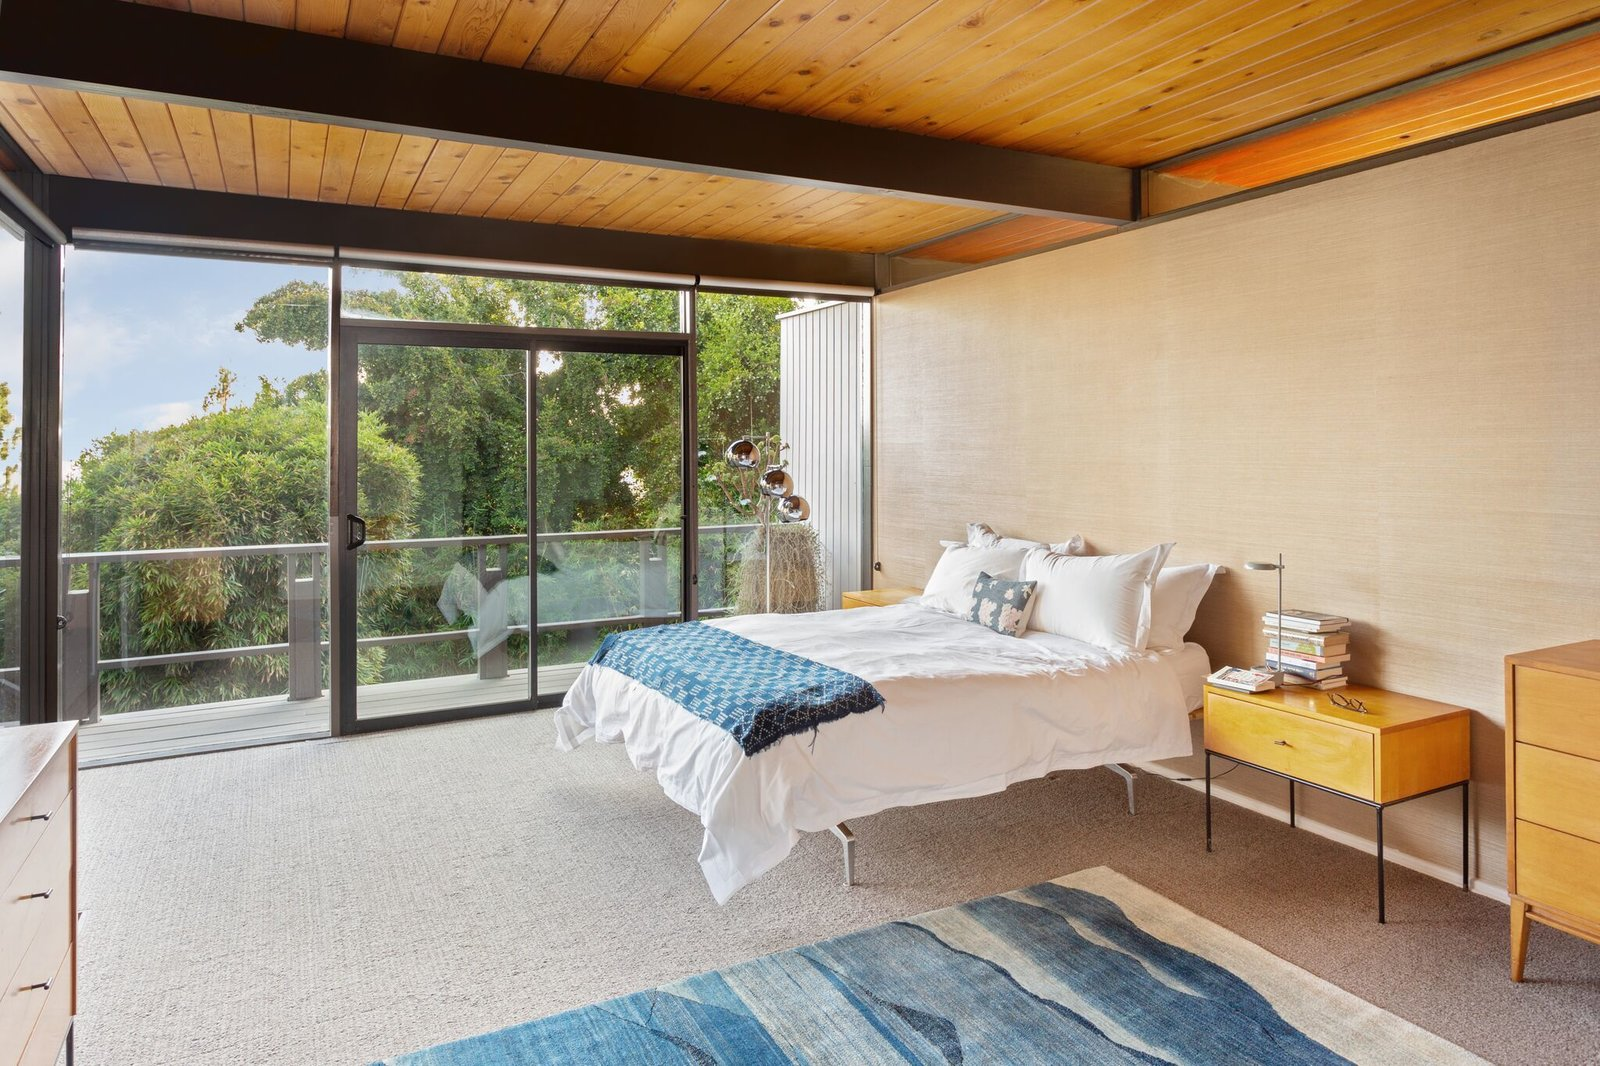 Bedroom, Bed, Dresser, Table, Night Stands, Rug, Carpet, and Floor  Bedroom Carpet Floor Night Stands Photos from This Post-and-Beam in Pasadena Offers Classic California Living For $2M